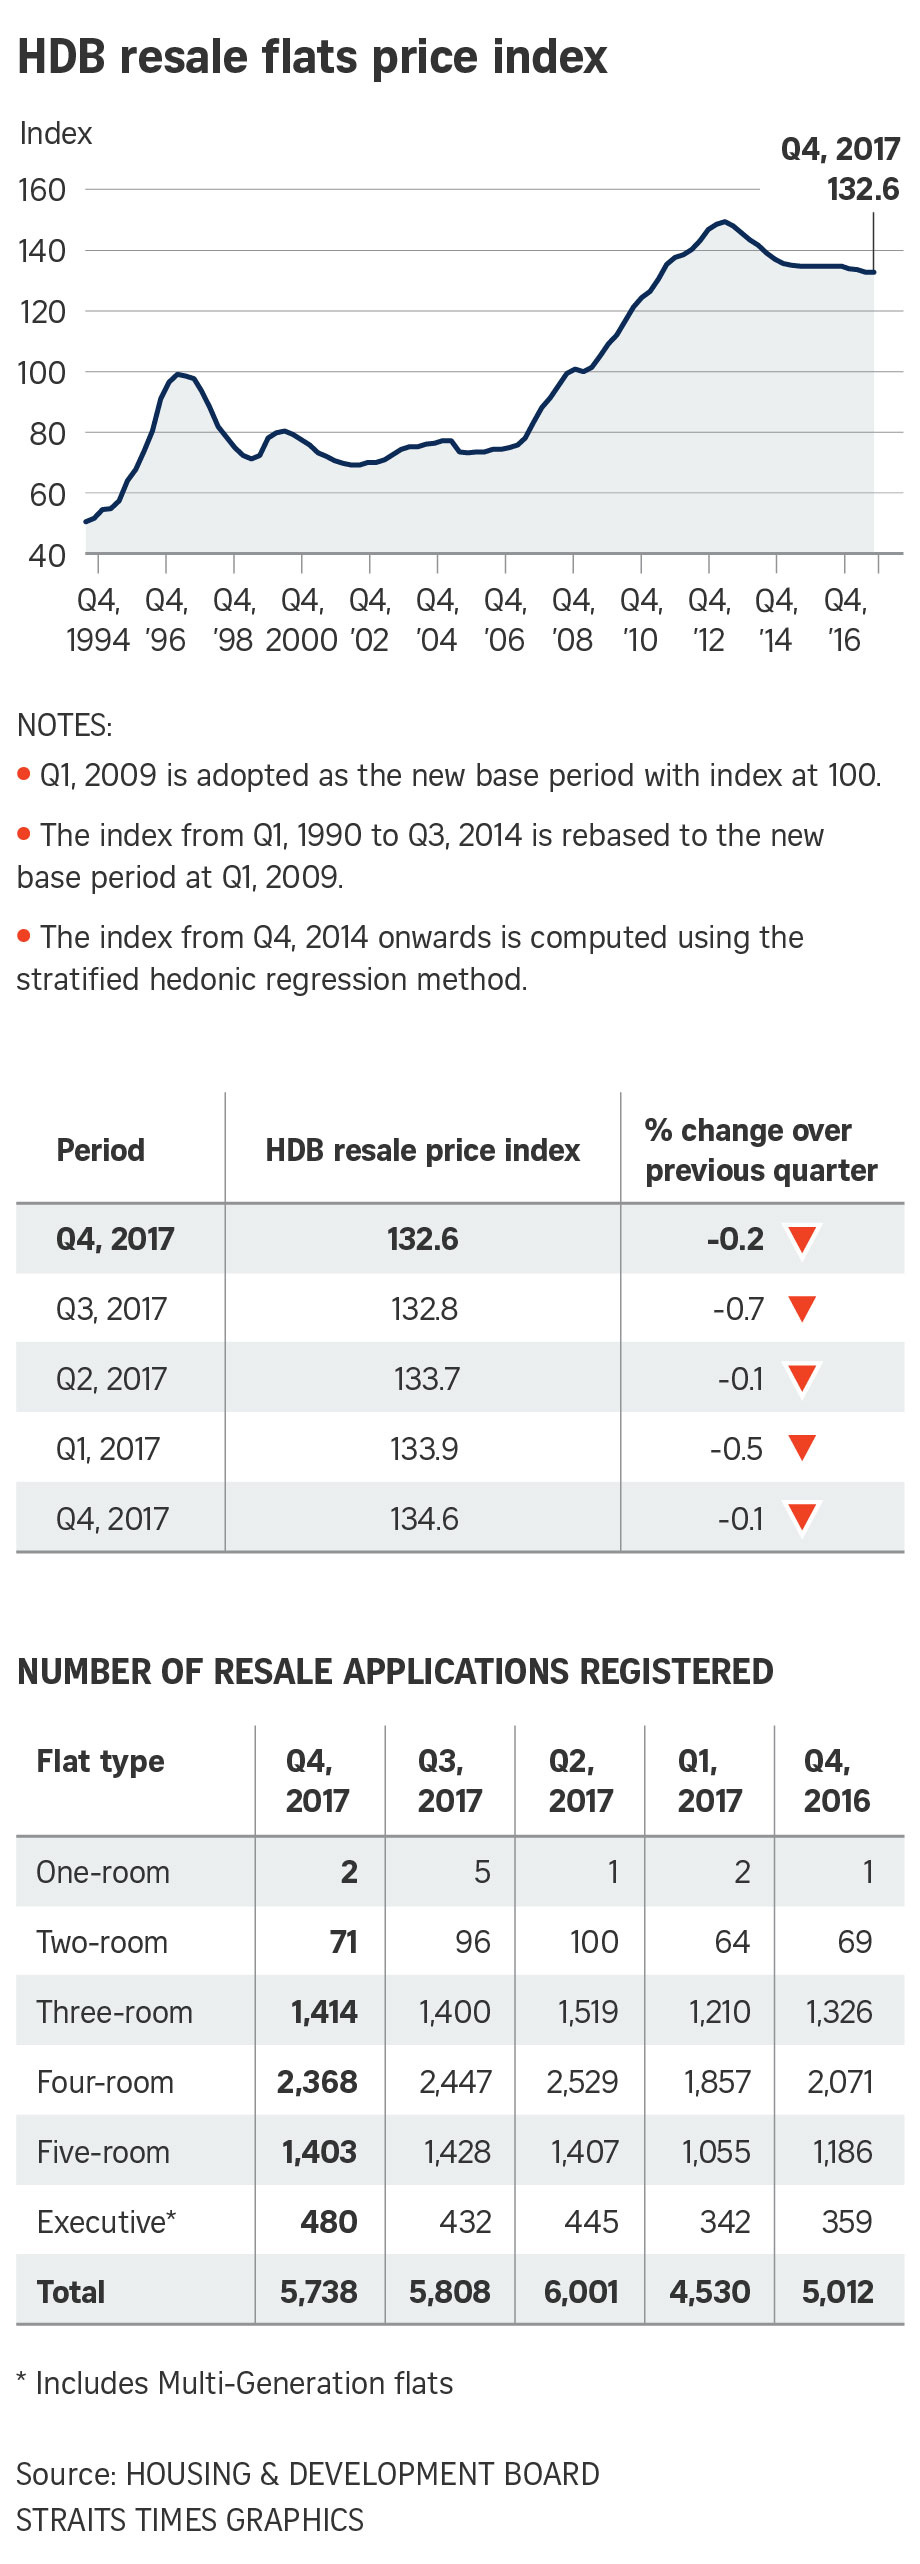 HDB resale prices